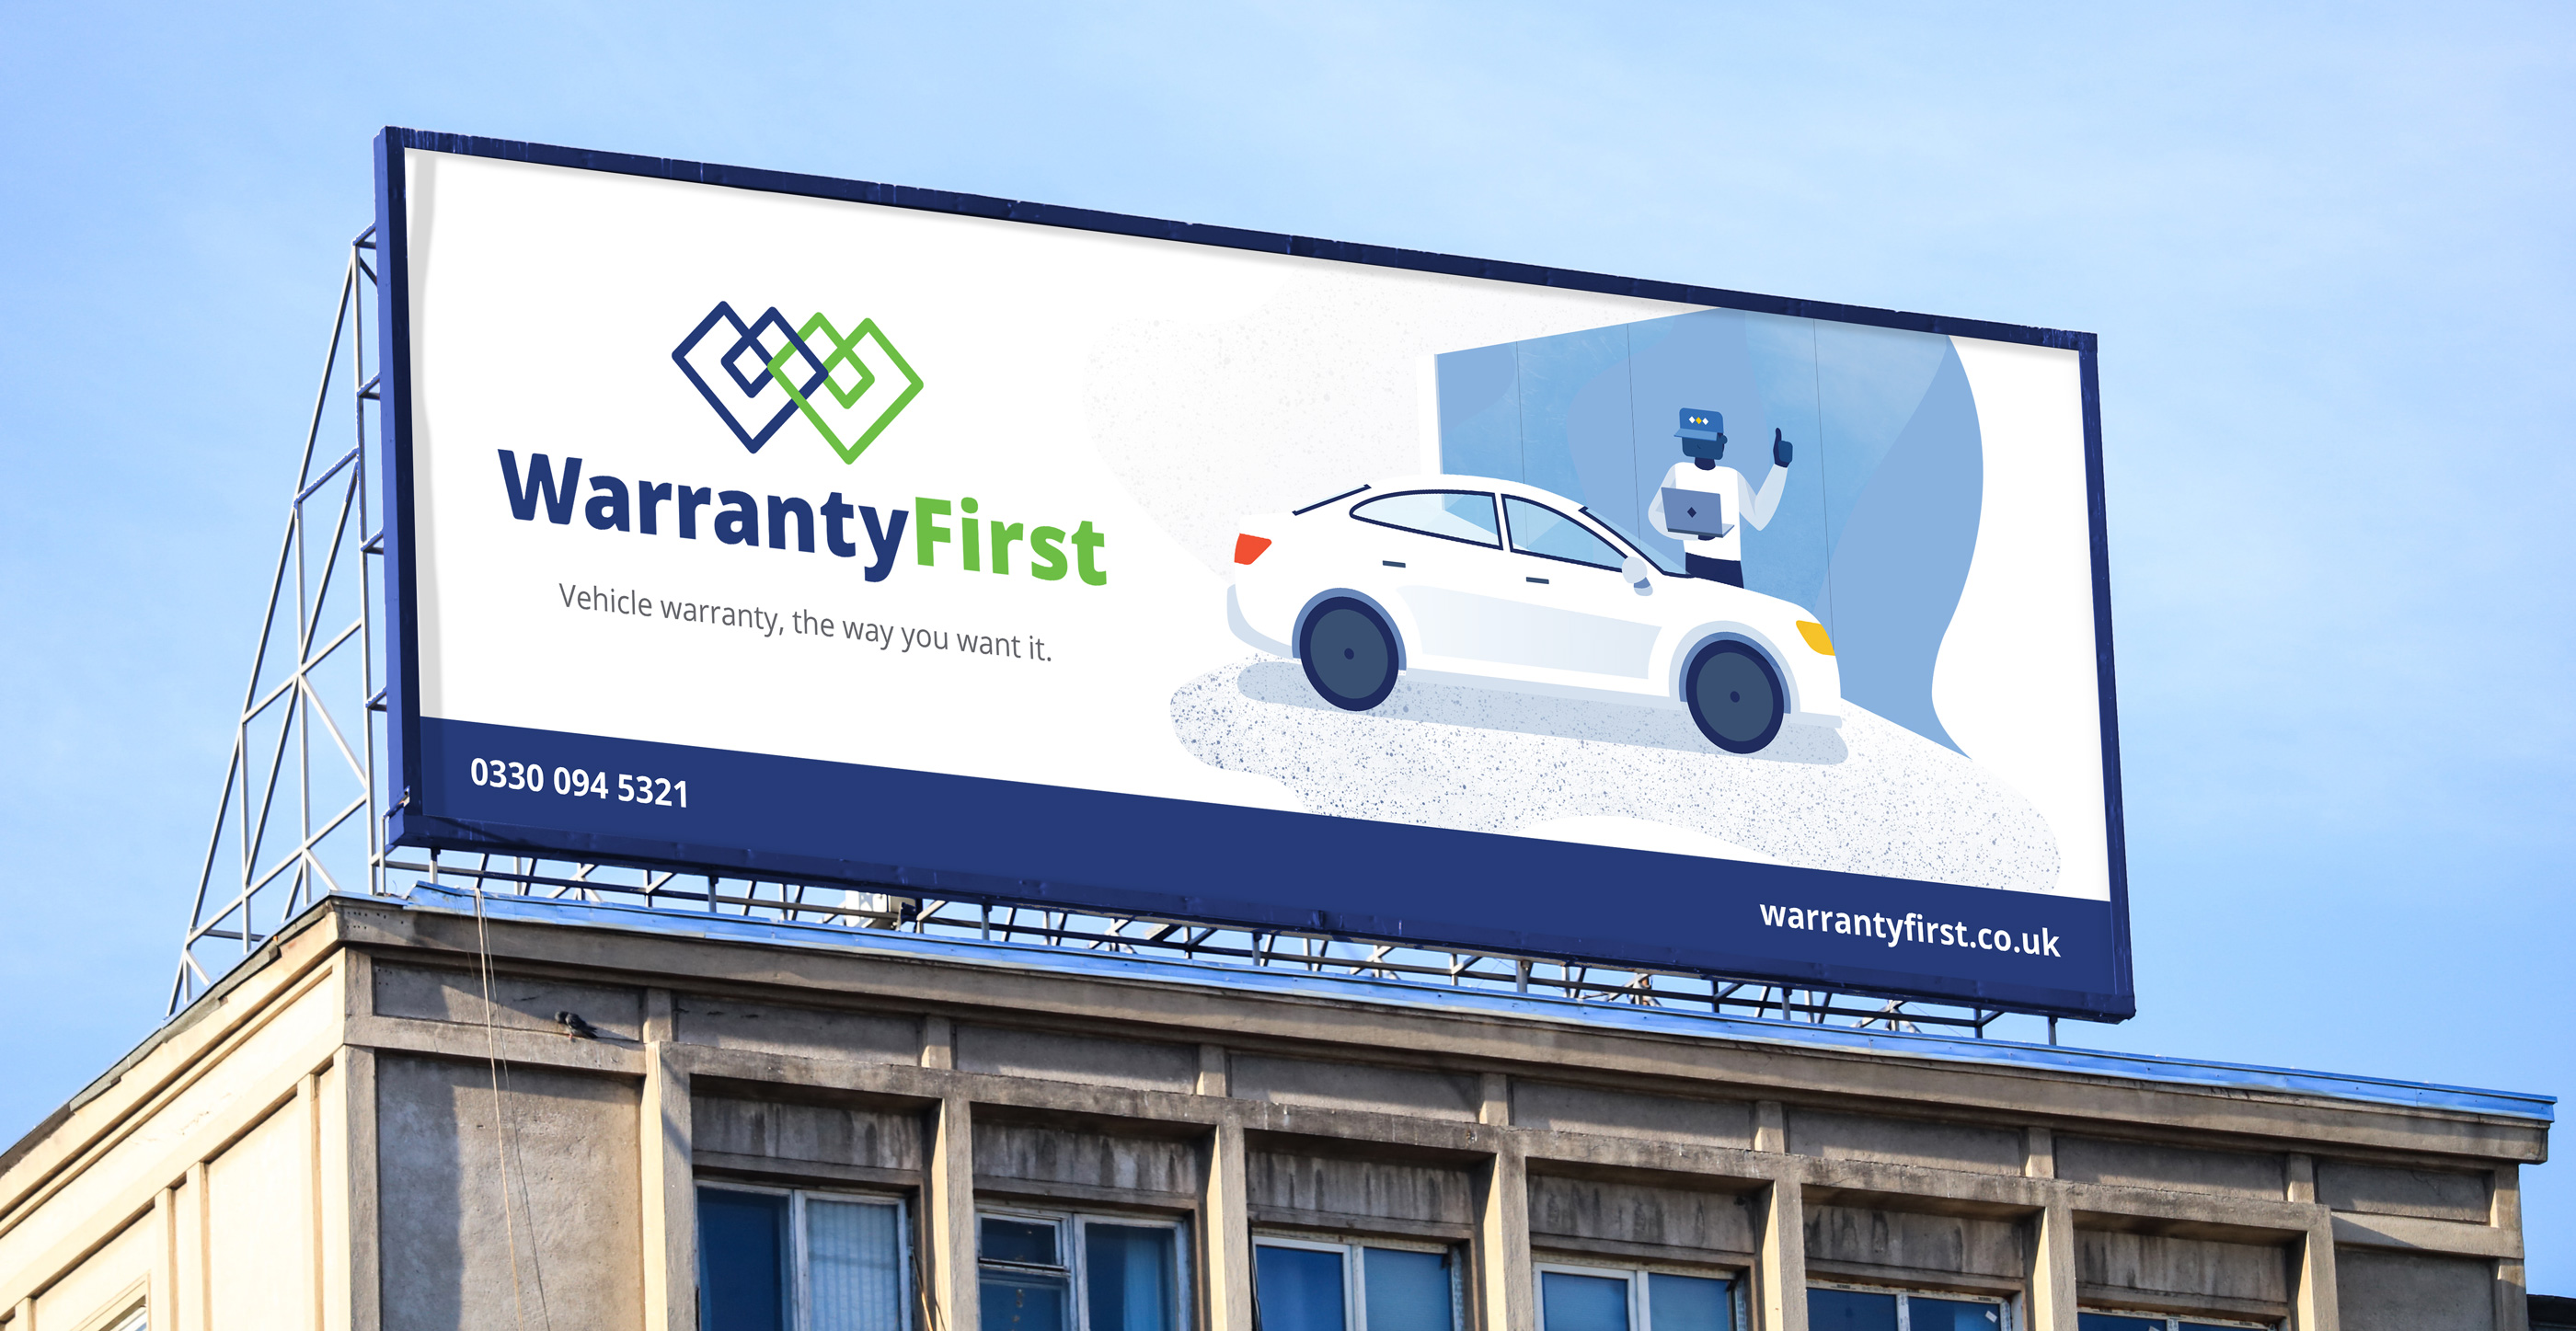 Warranty First Billboard mockup